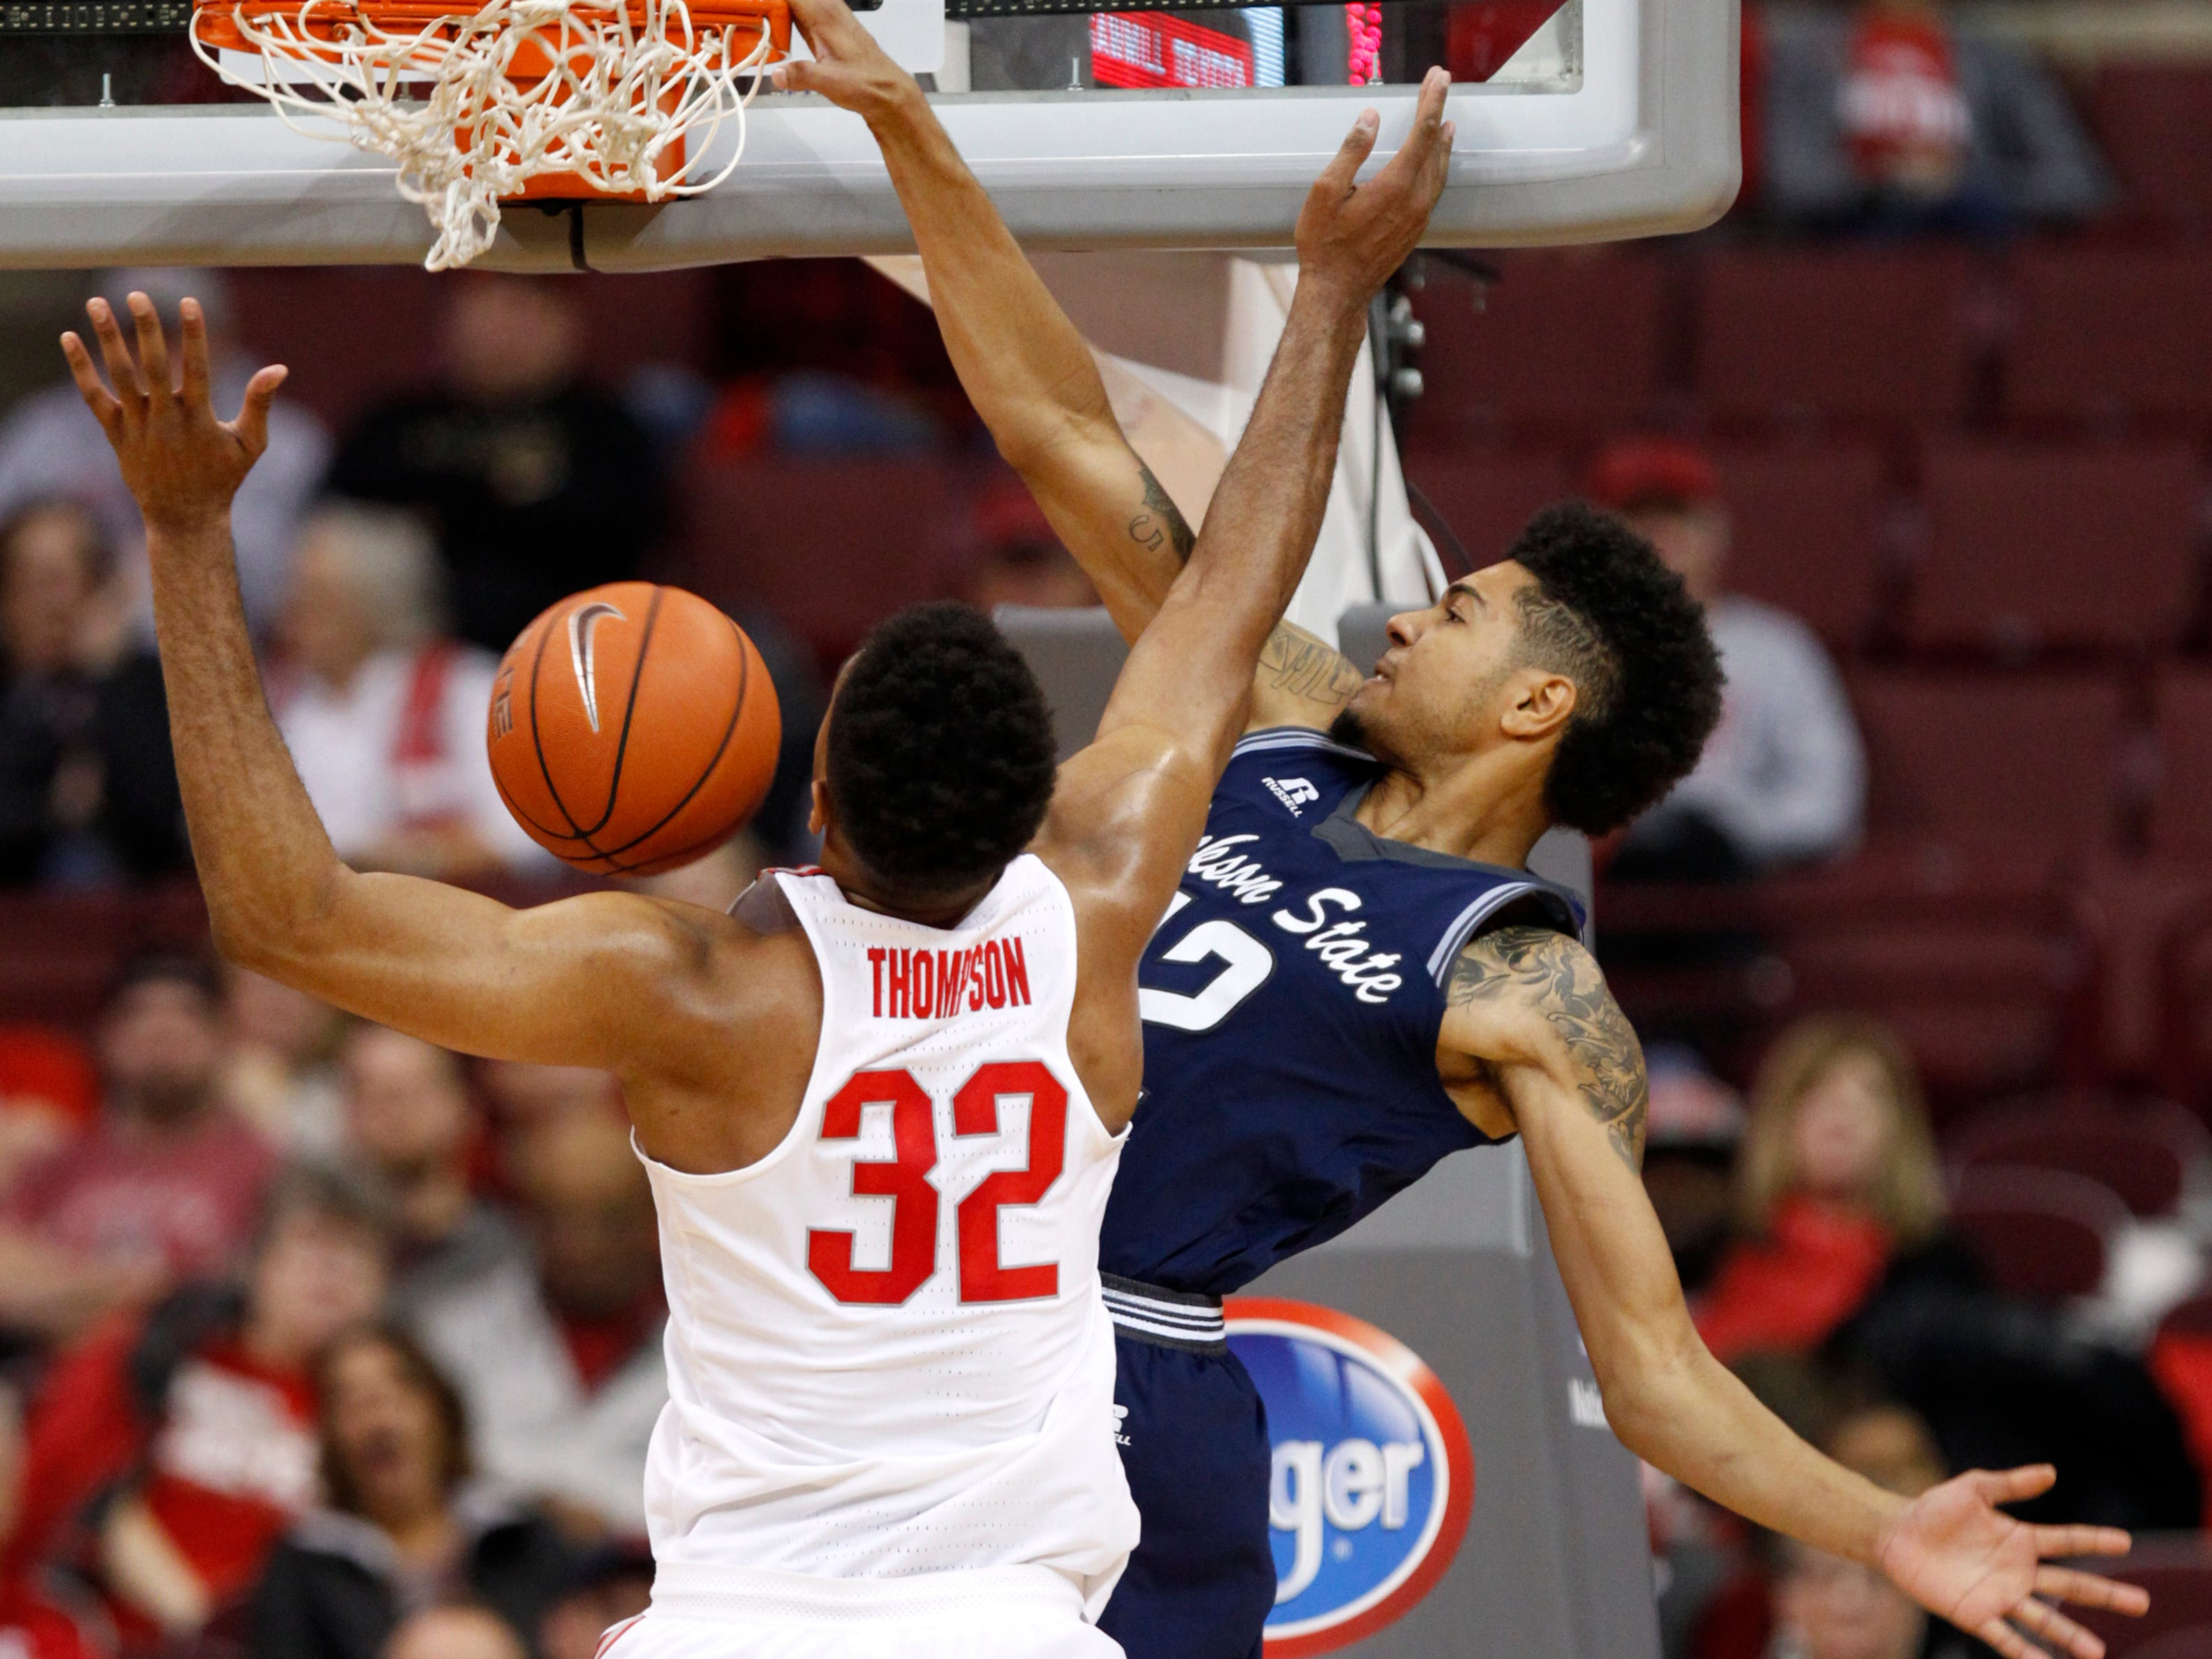 lyle leads ohio state over jackson state usa today sports jackson state forward maurice rivers right dunks against ohio state center trevor thompson during